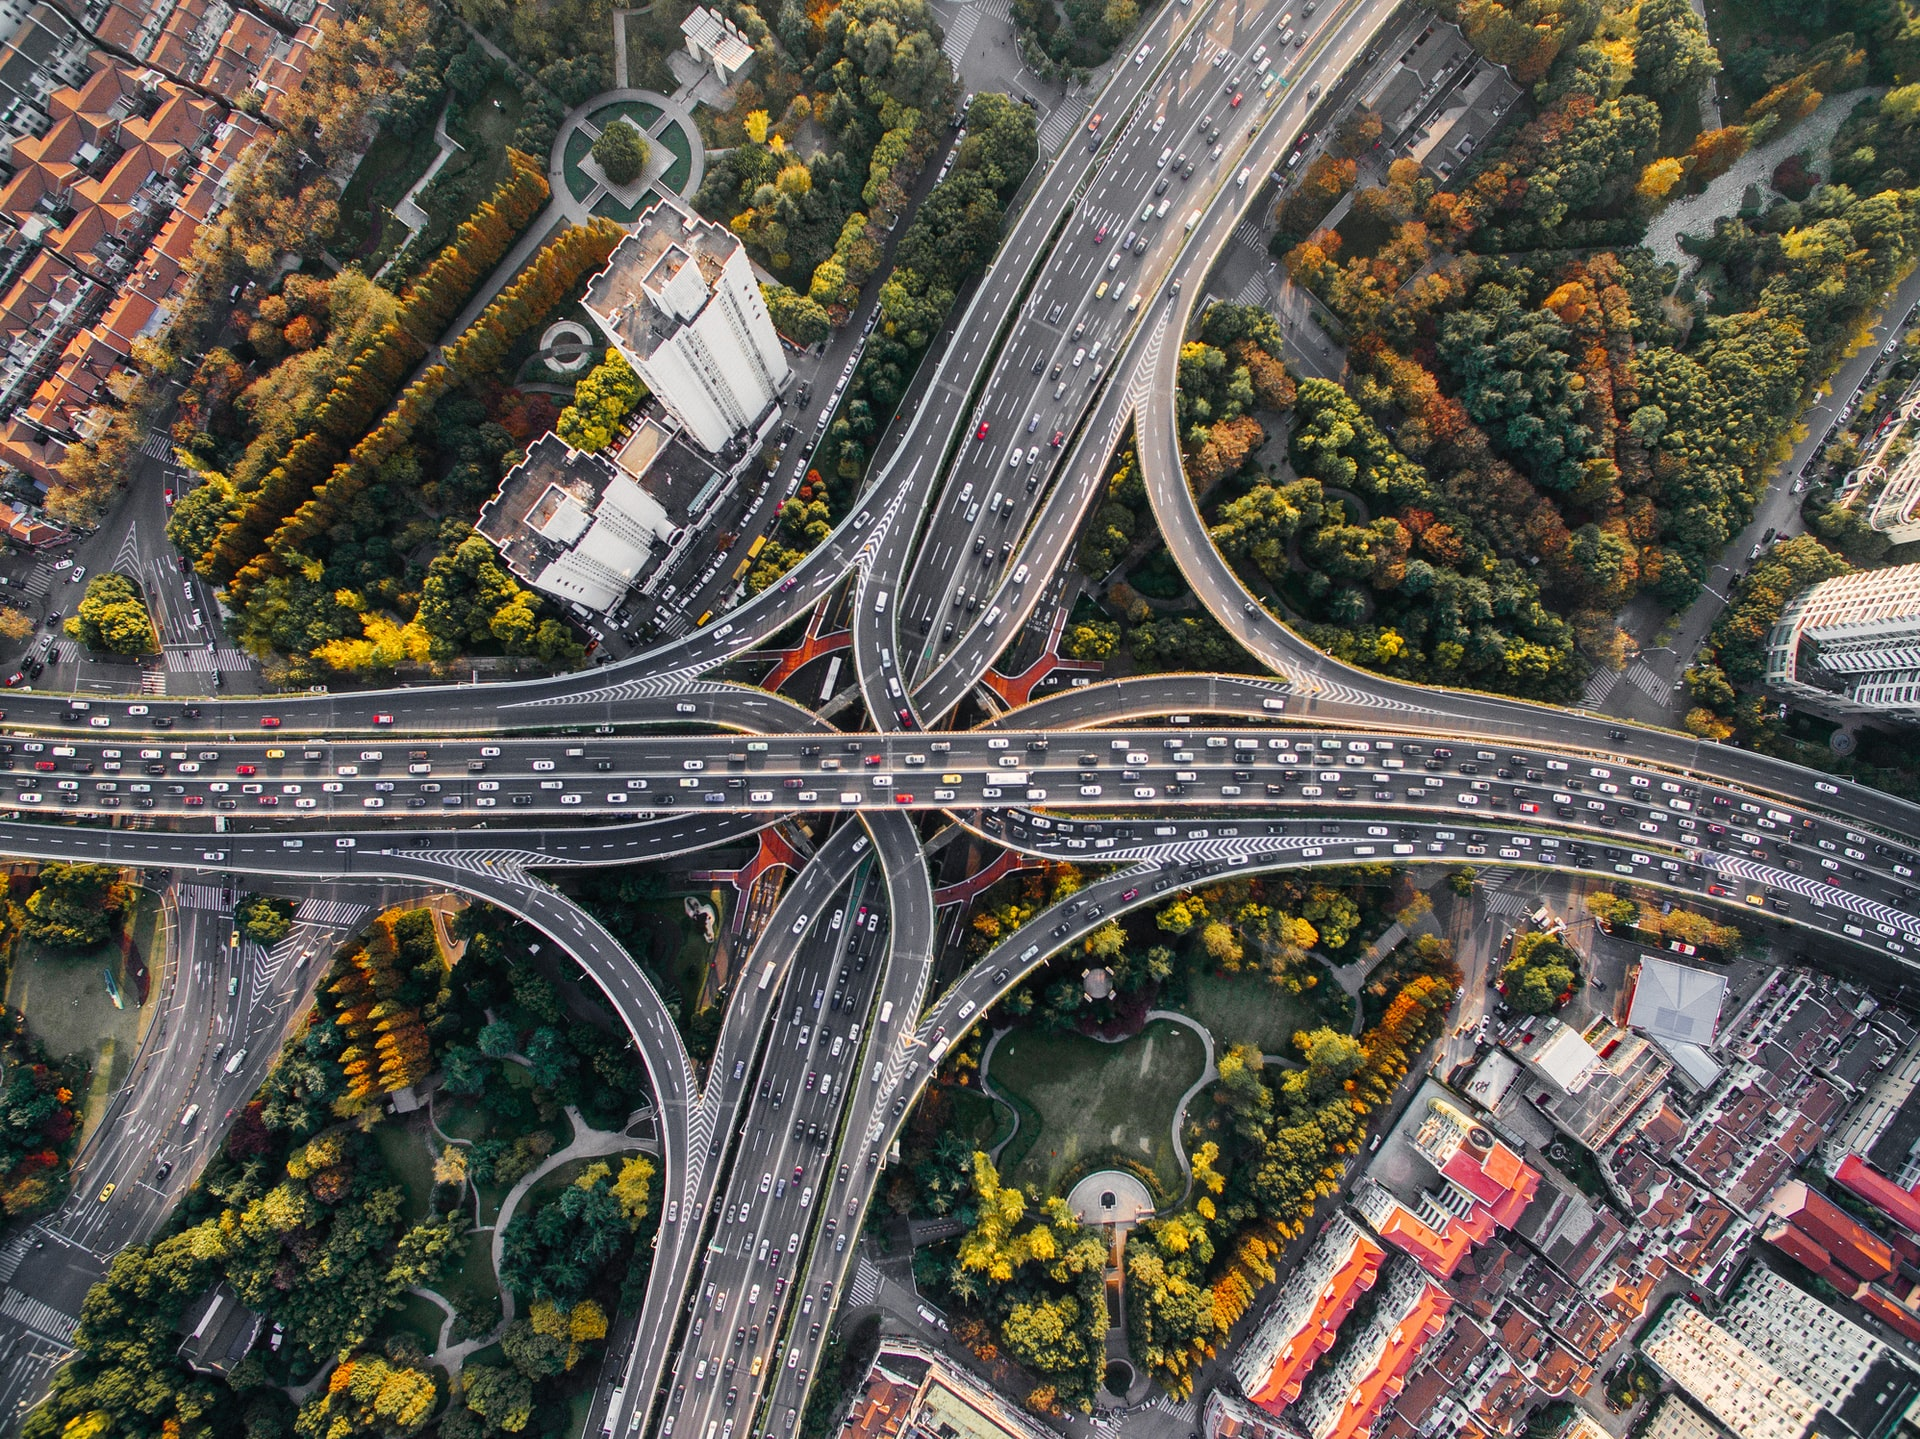 Aerial view of junction roads. Photo by Denys Nevozhai on Unsplash.